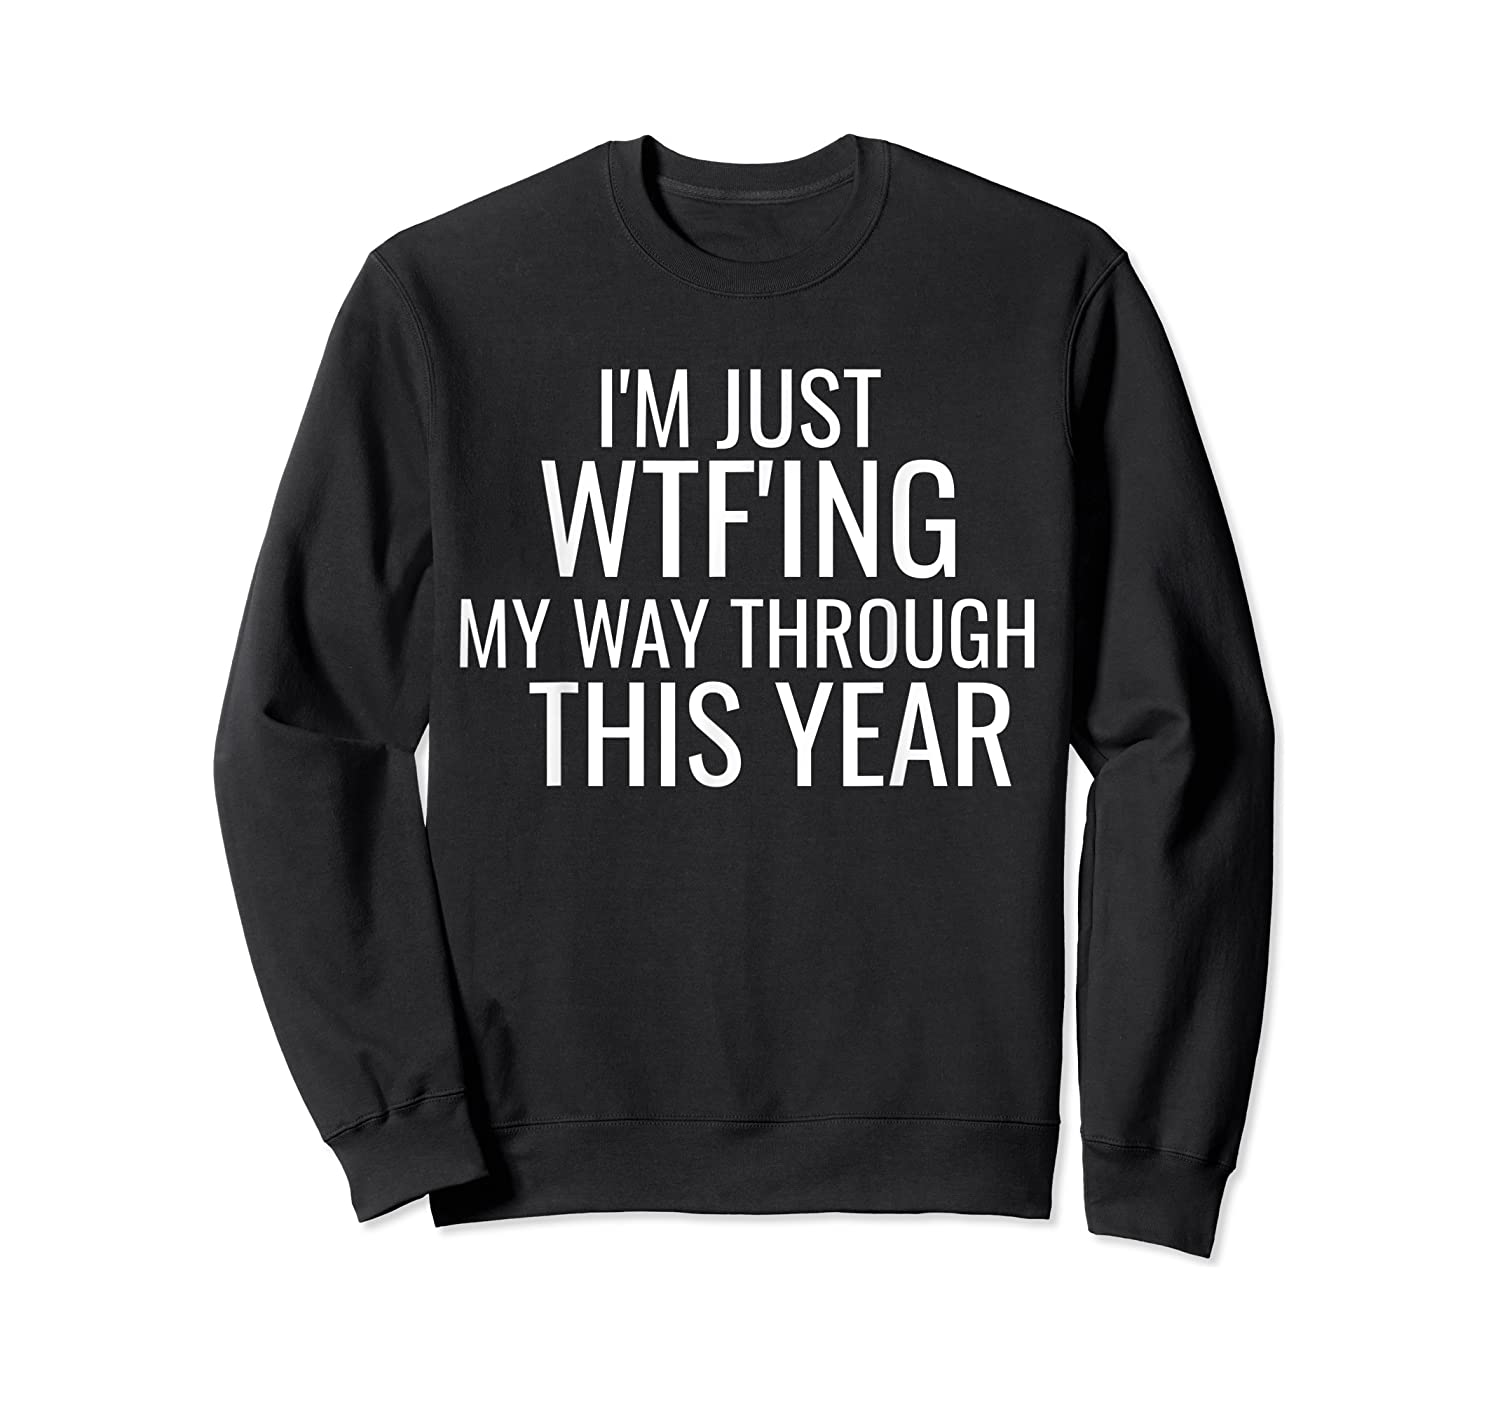 I'm Just Wtf'ing Through This Year Wtf Shirts Crewneck Sweater